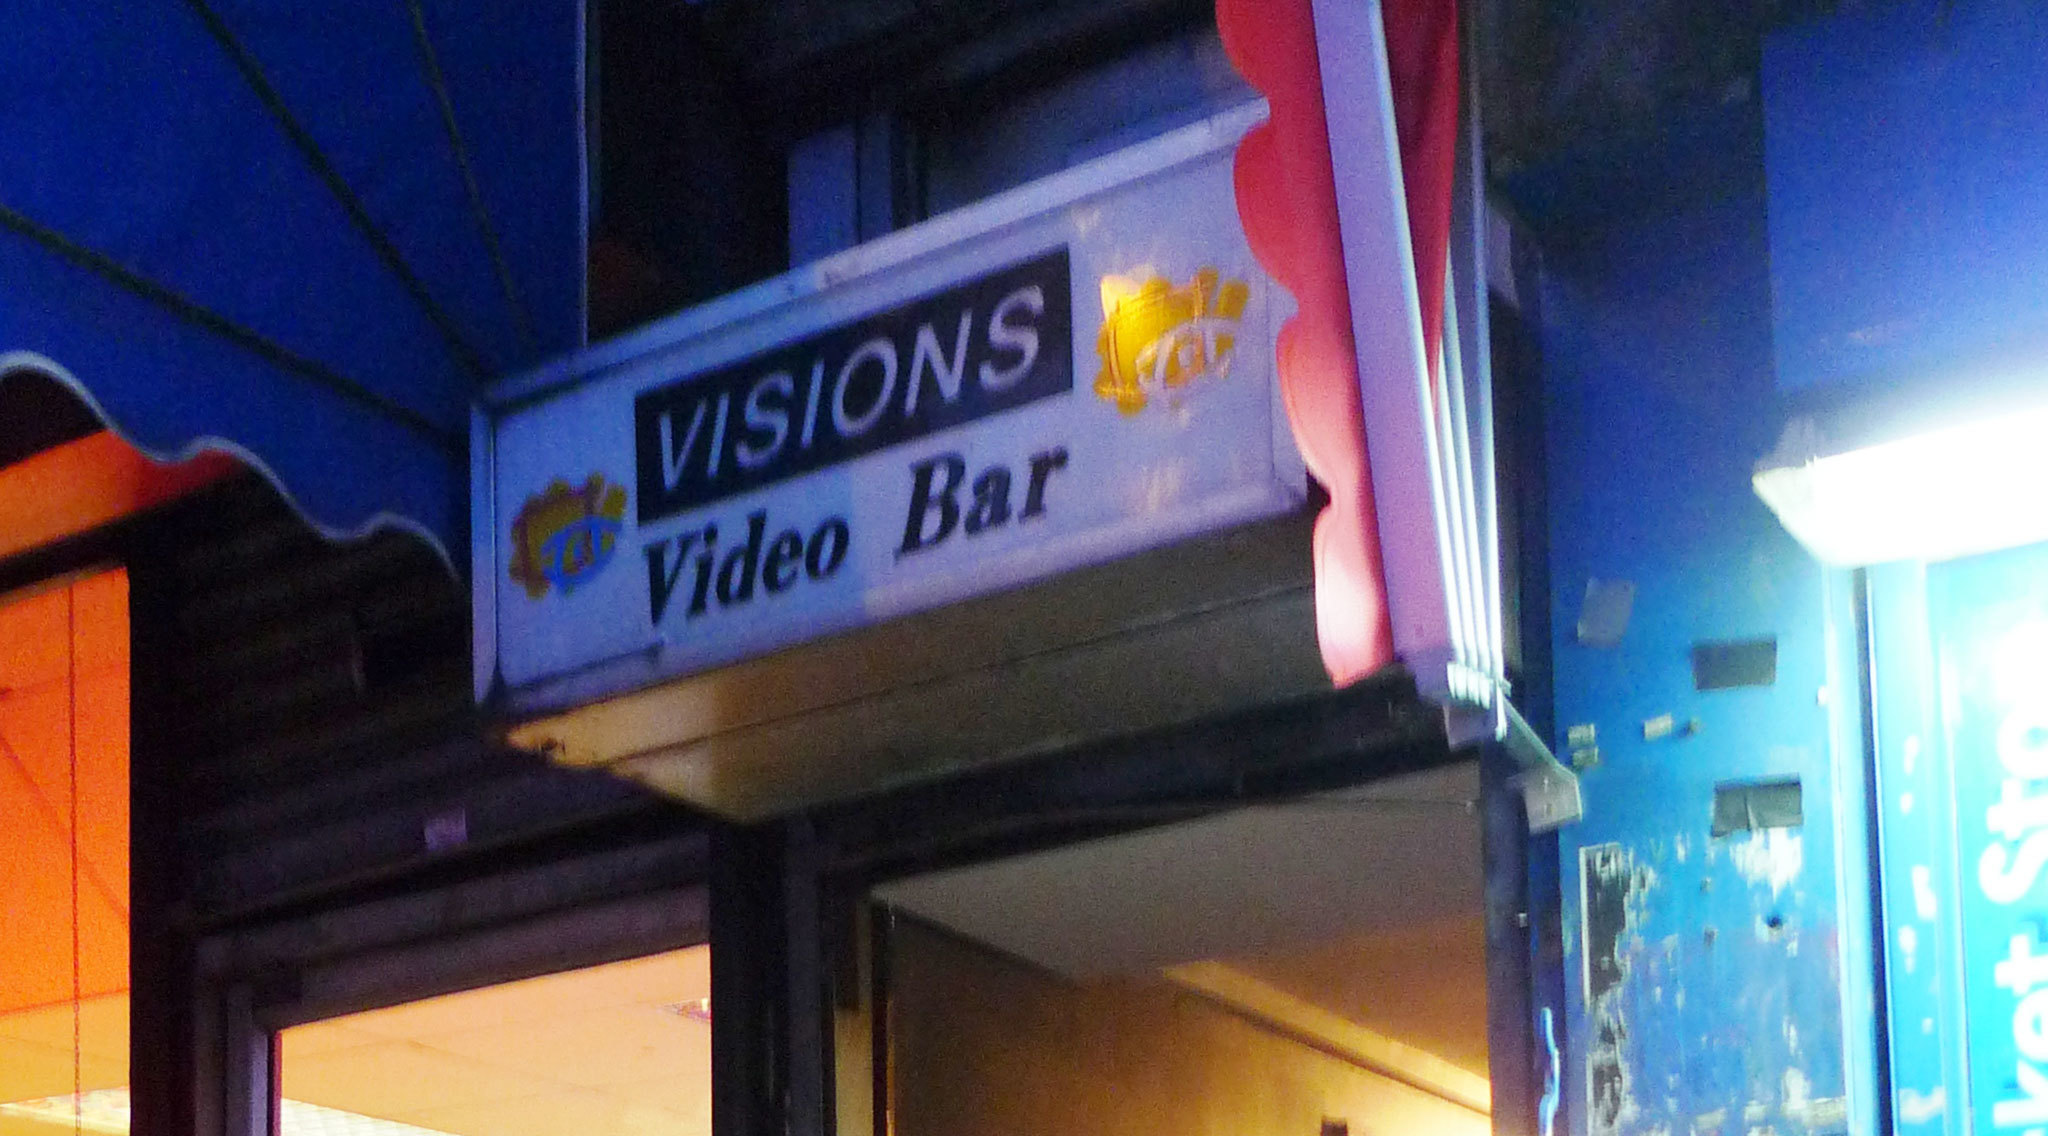 Visions Video bar dalston